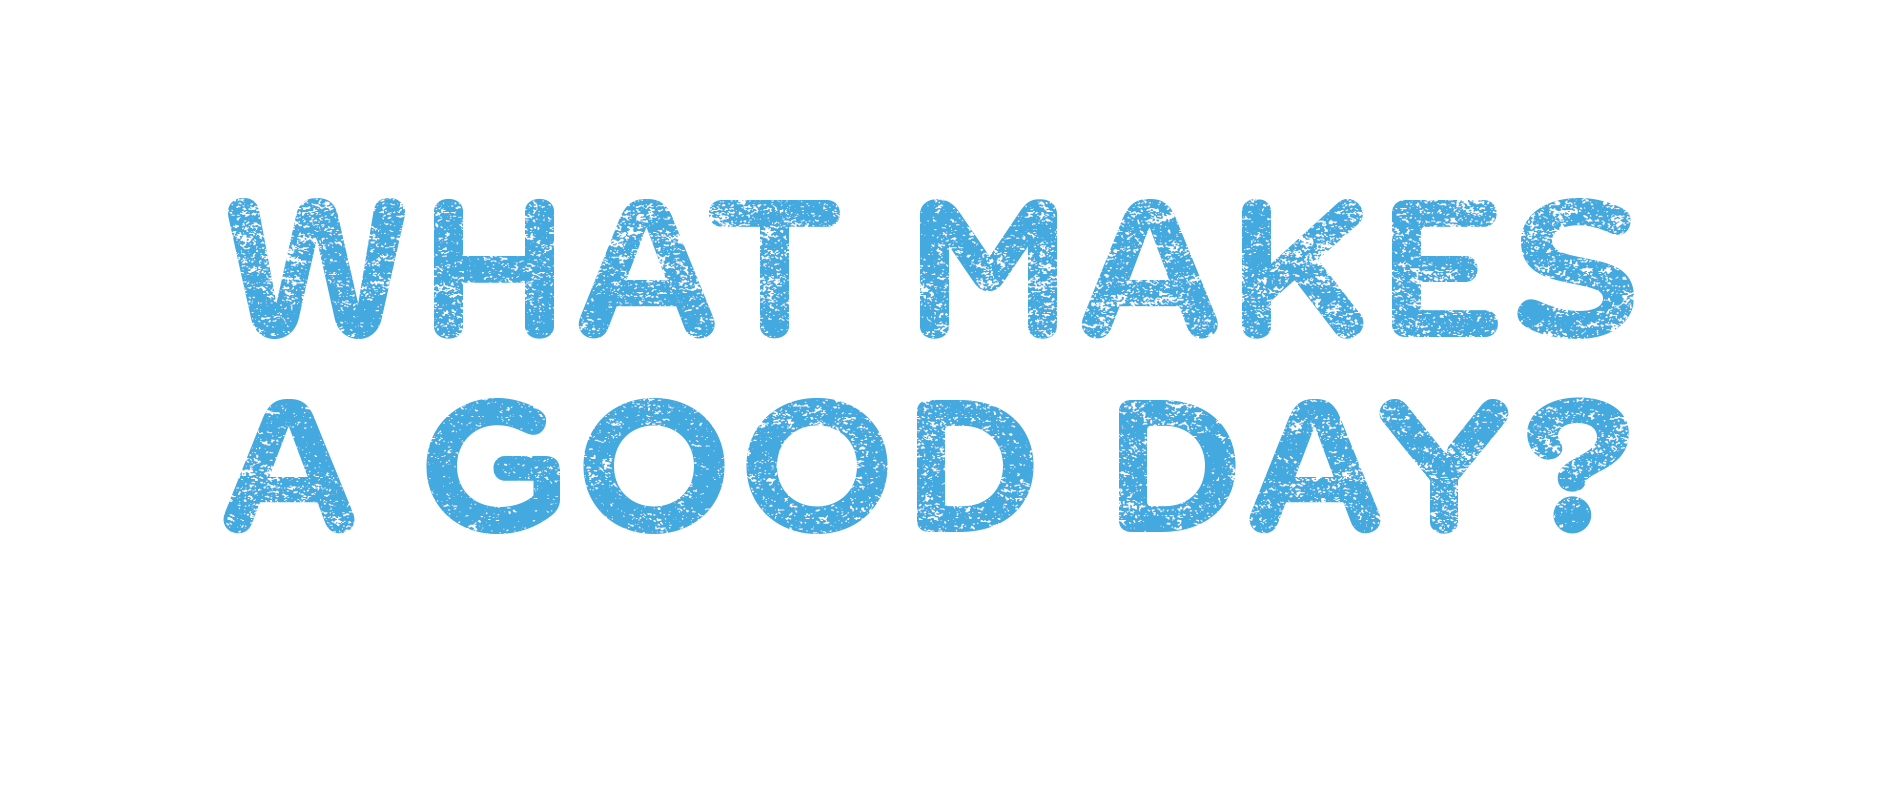 What makes a good day?